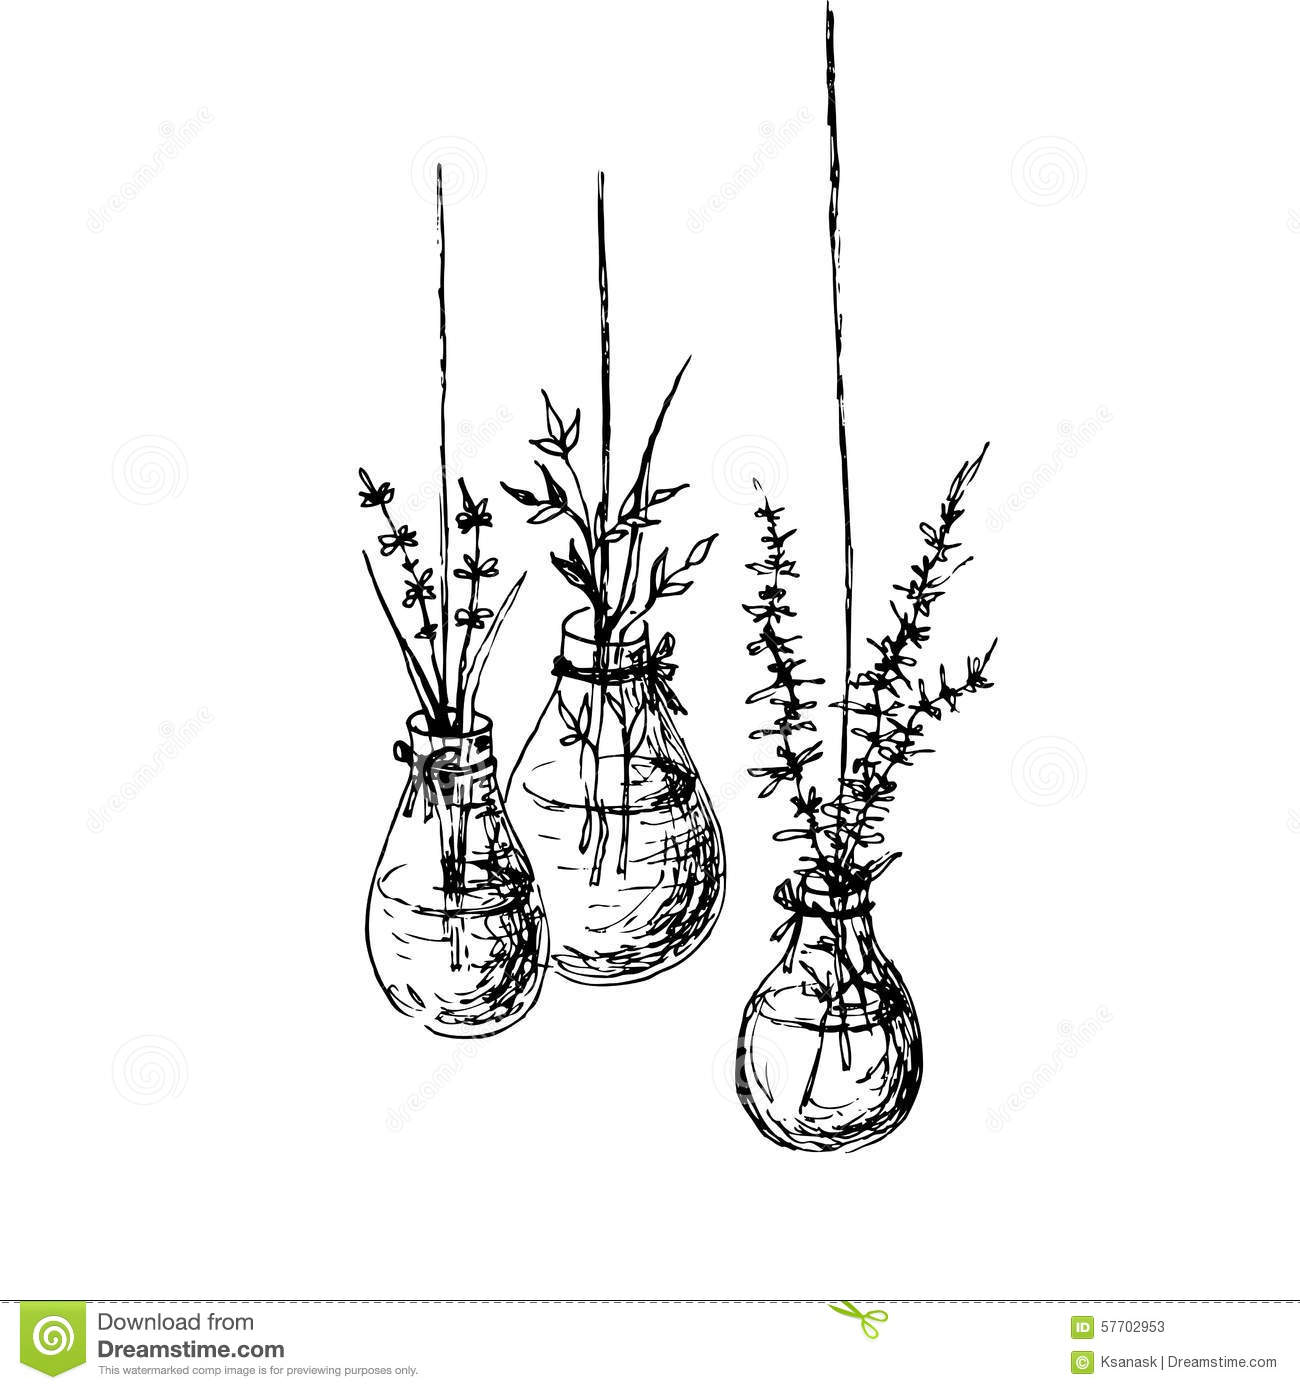 Herbs In Hanging Vases Ink Drawing Stock Vector